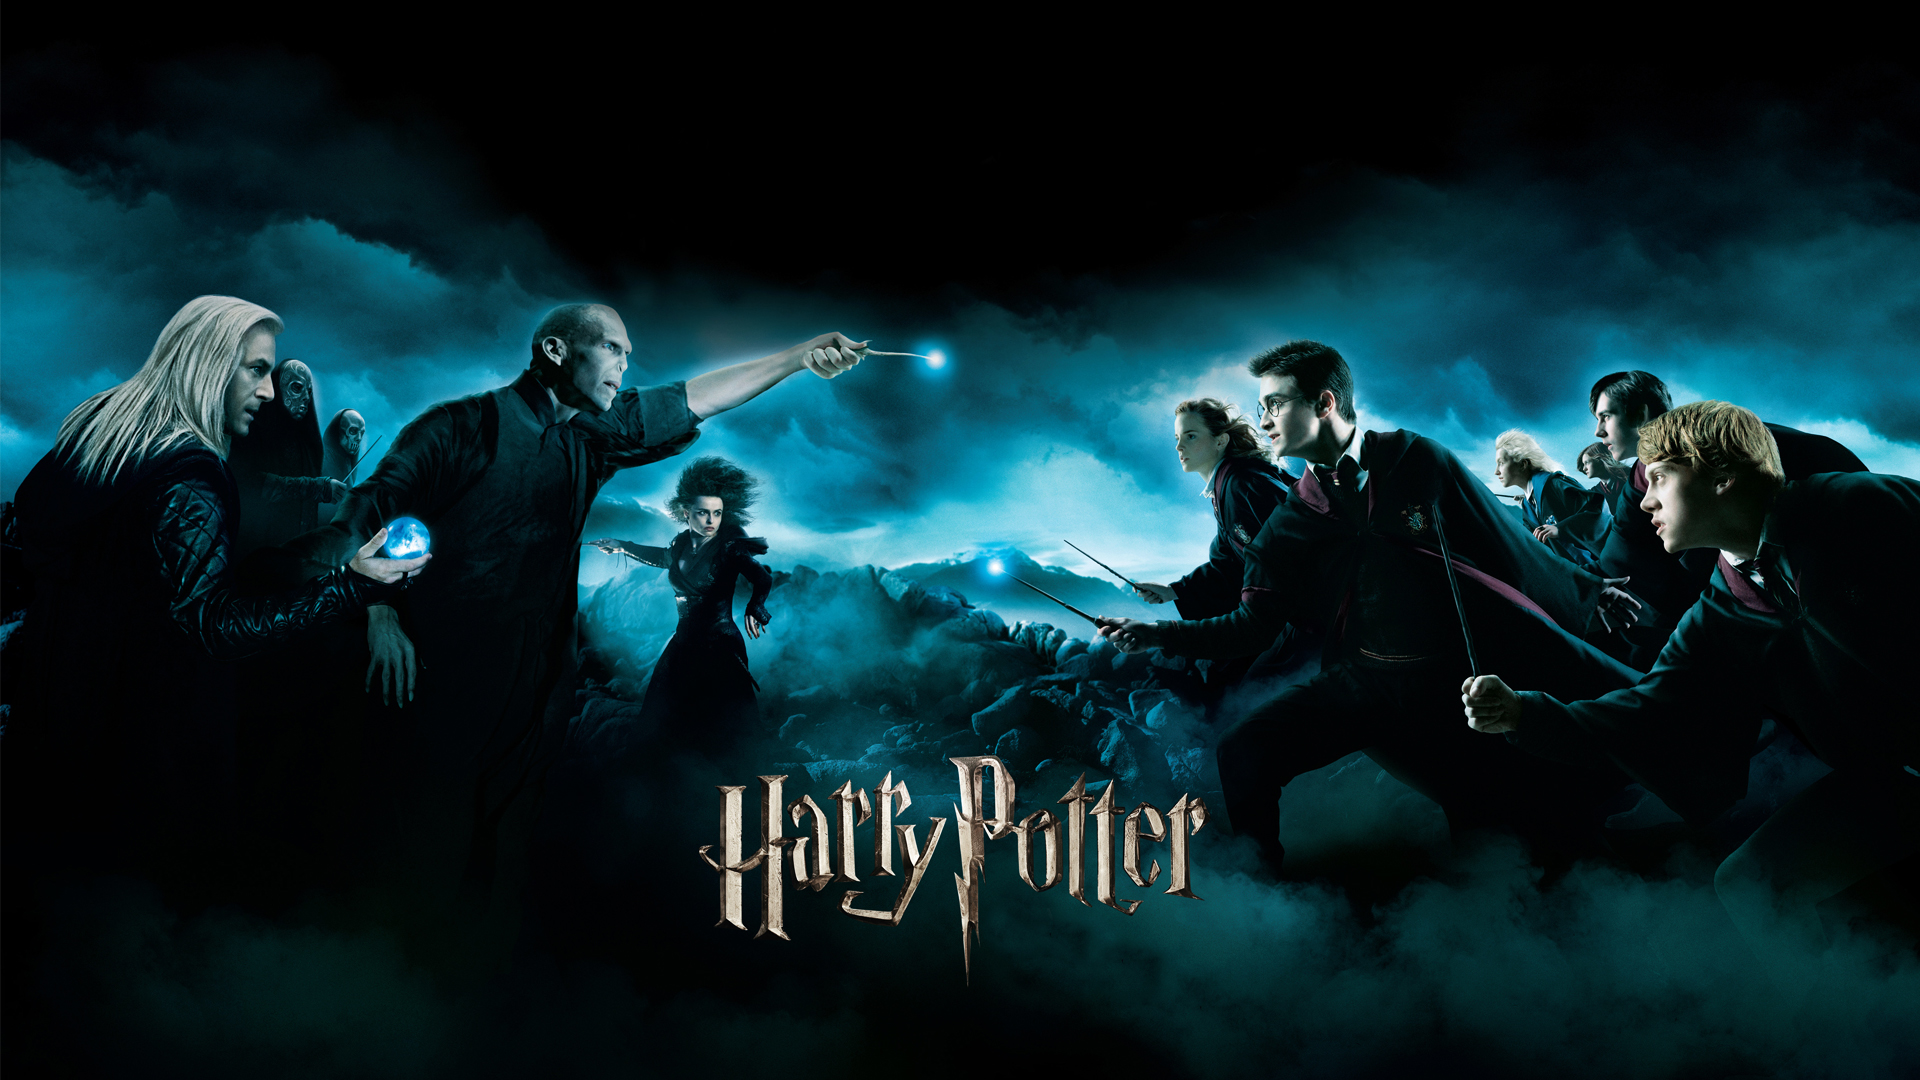 Hd wallpaper harry potter - Harry Potter Wallpaper 1920x1080 1 Hebus Org High Definition